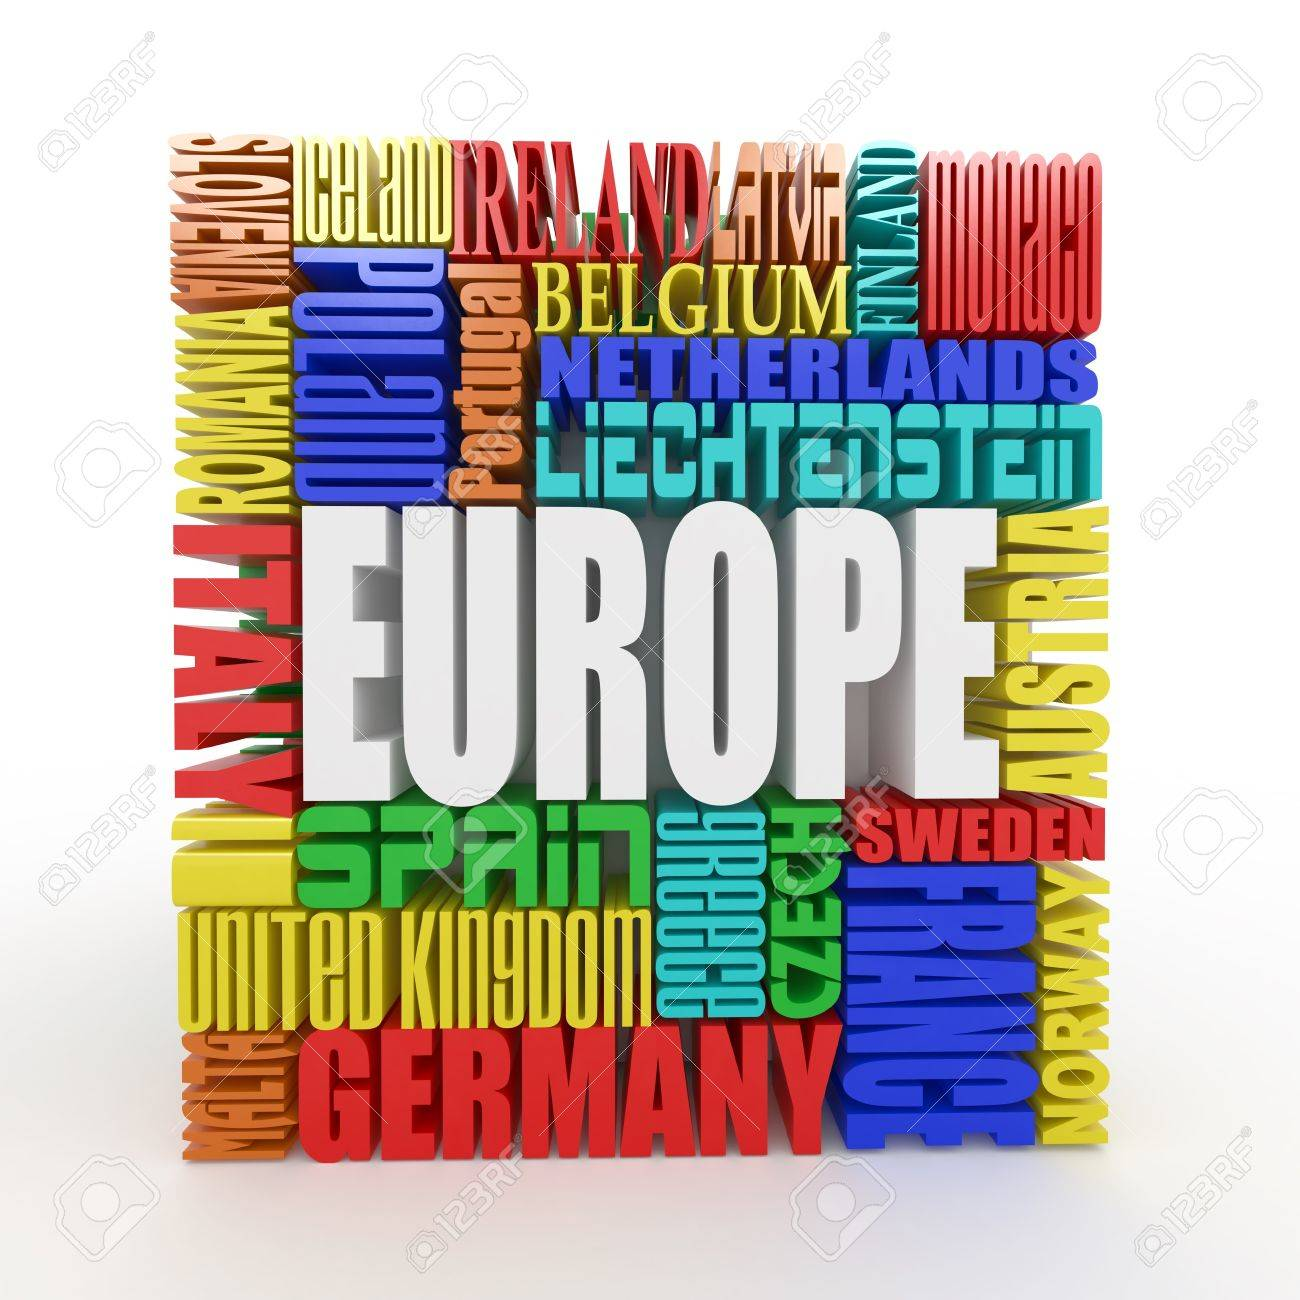 Image result for europe name